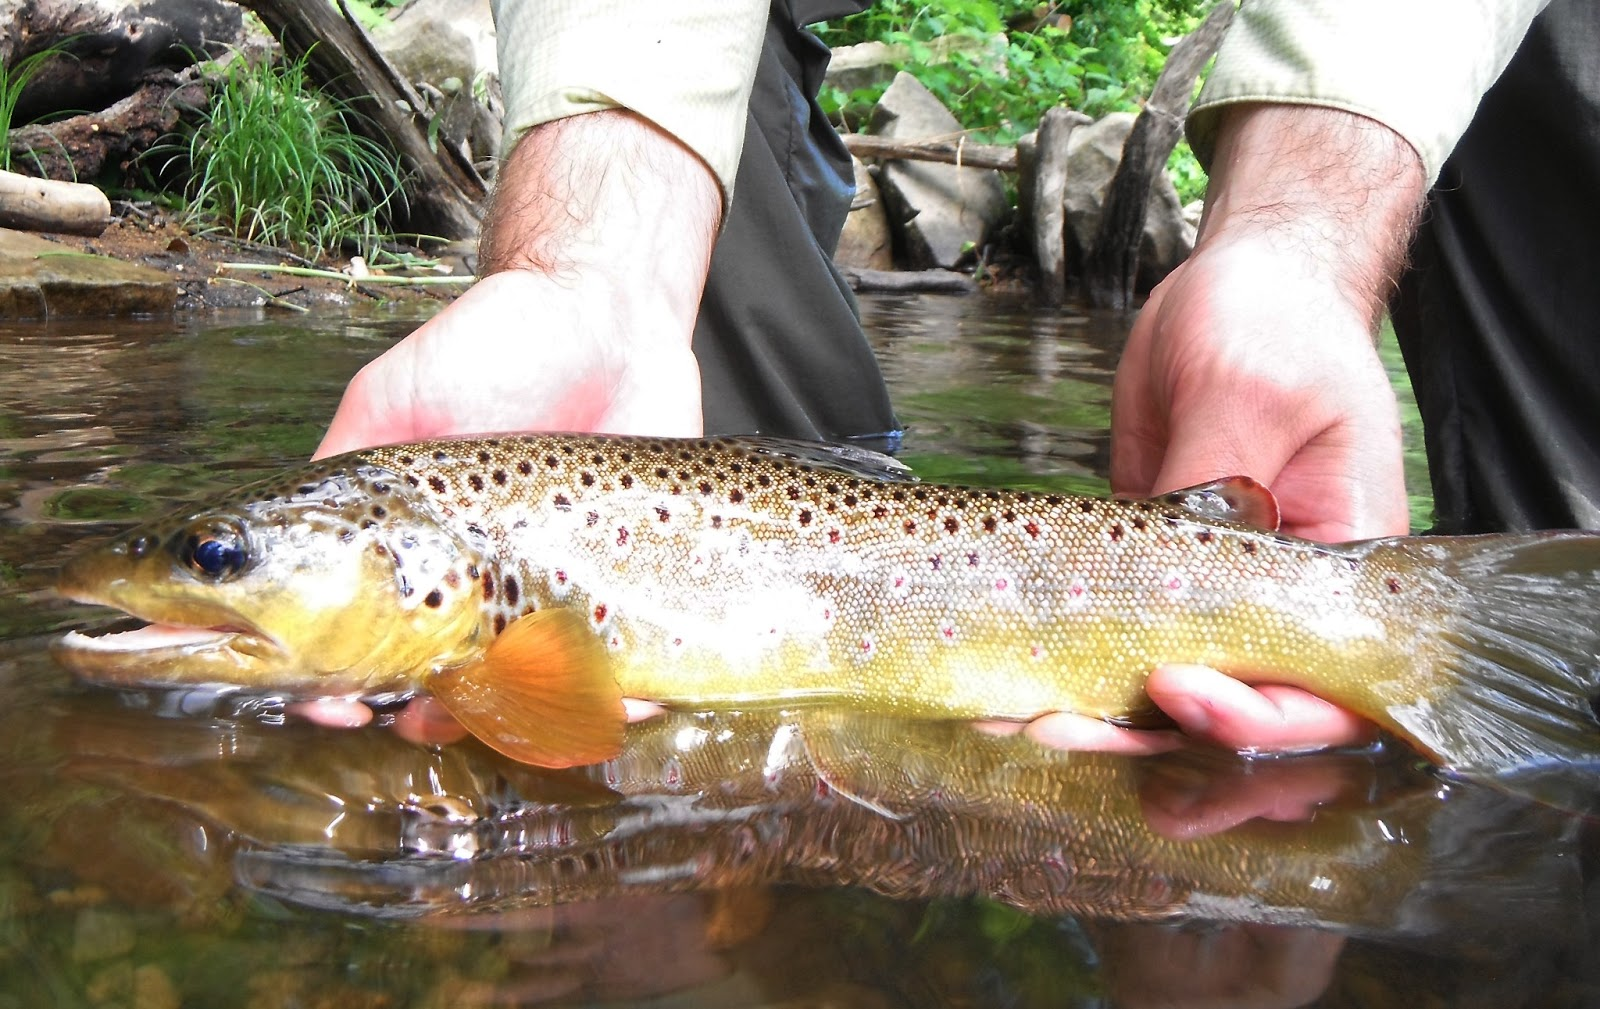 Western maryland fly fishing july 2013 for Md trout fishing